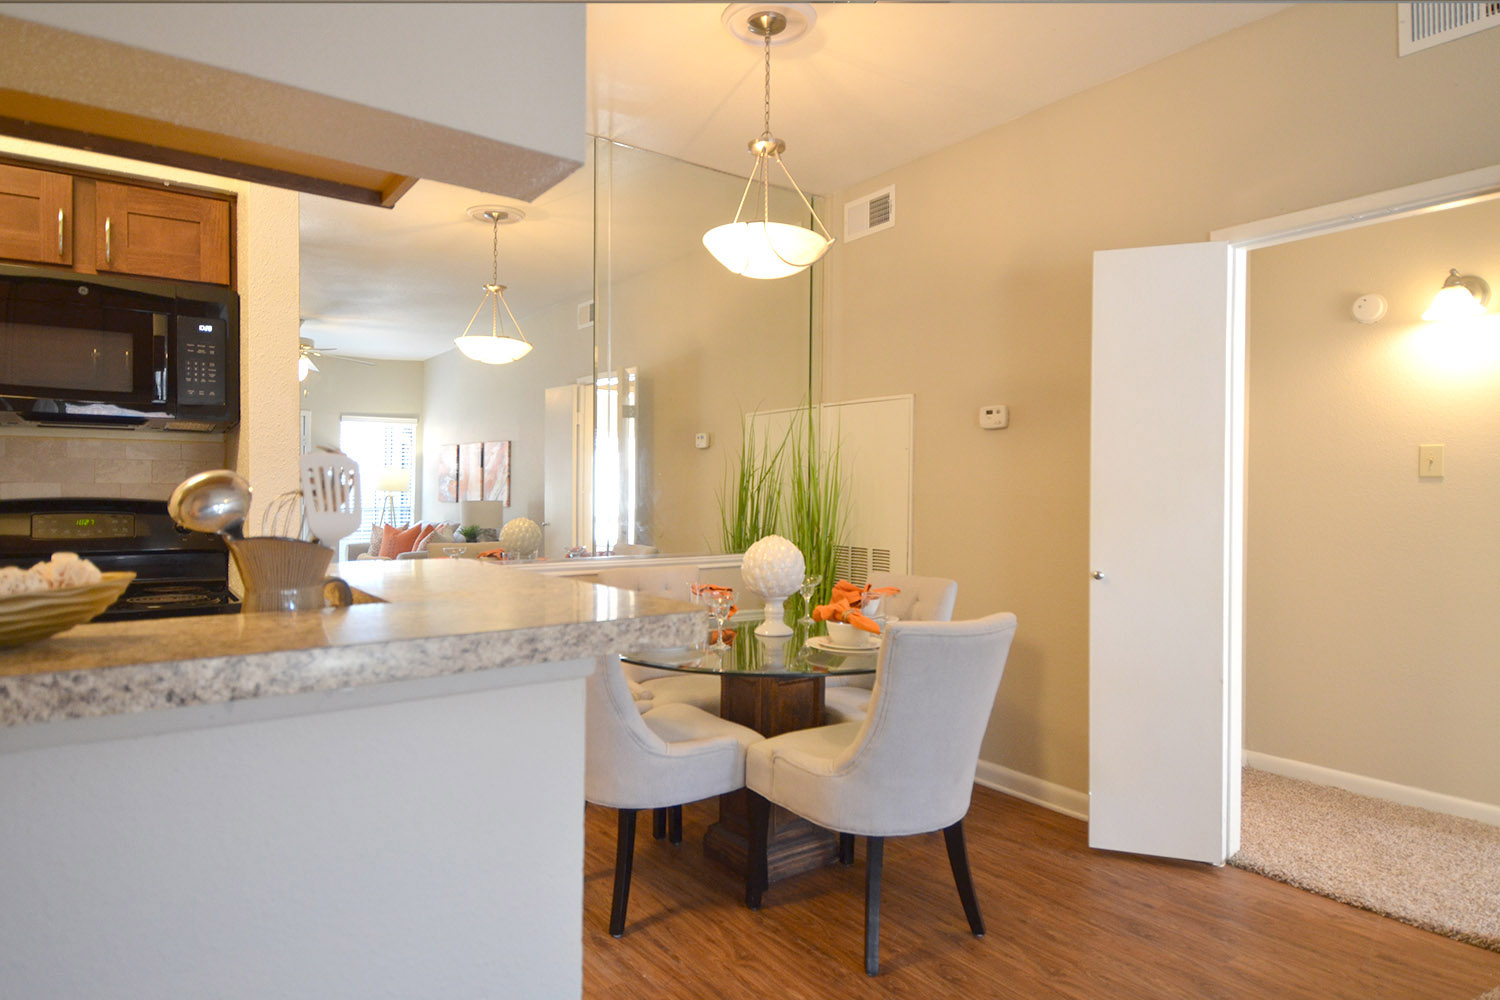 gallery 18 | Ascot Court Apartments In Jersey Village 77064